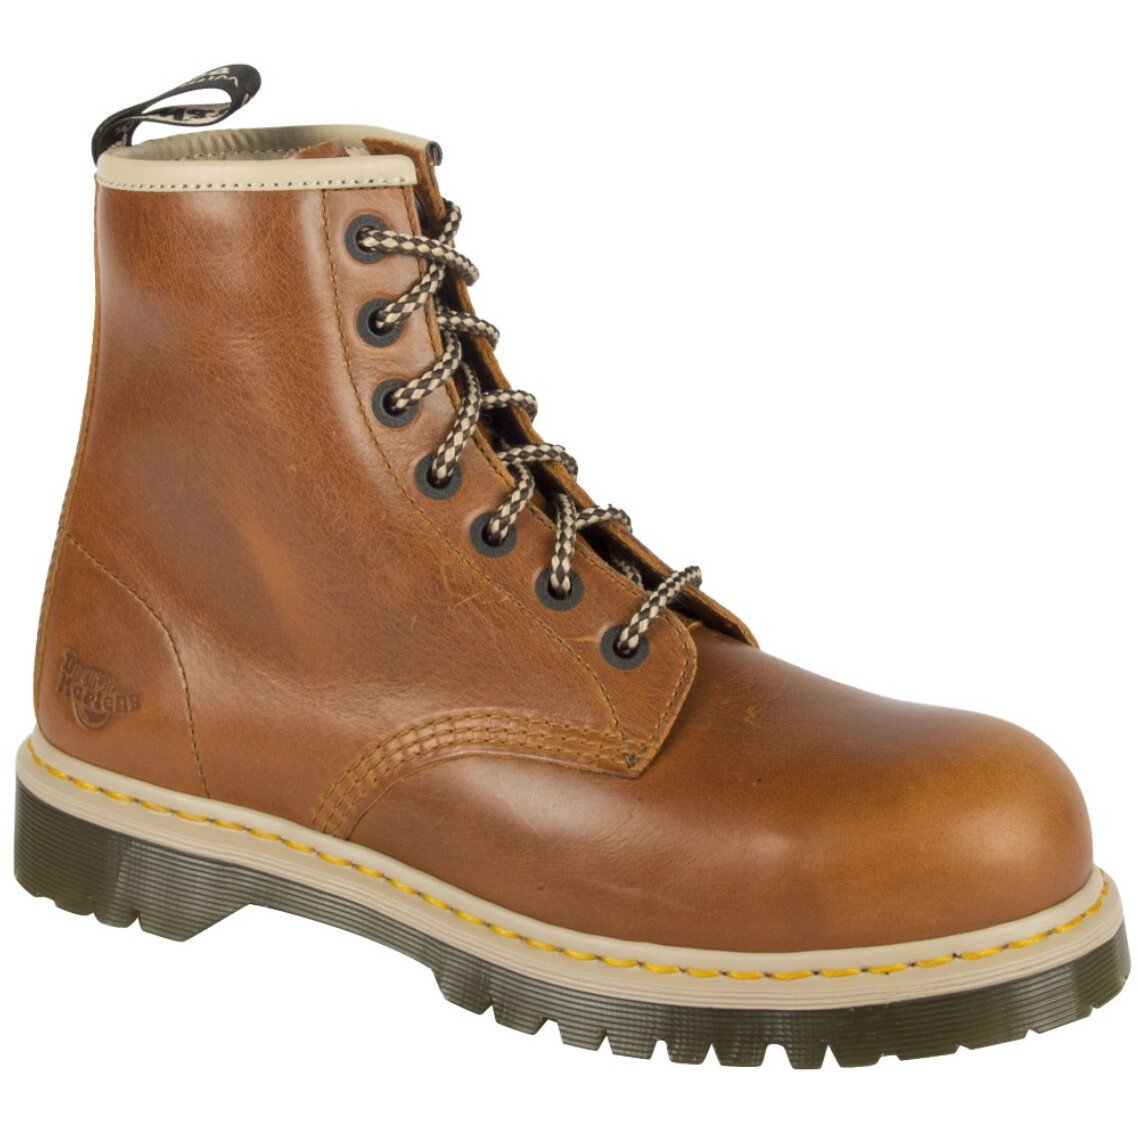 Dr. Martens 6604 (UK Size 3) Icon Leather Lace SB SRA Safety Boot 7B10 ST- UK3 - Tan